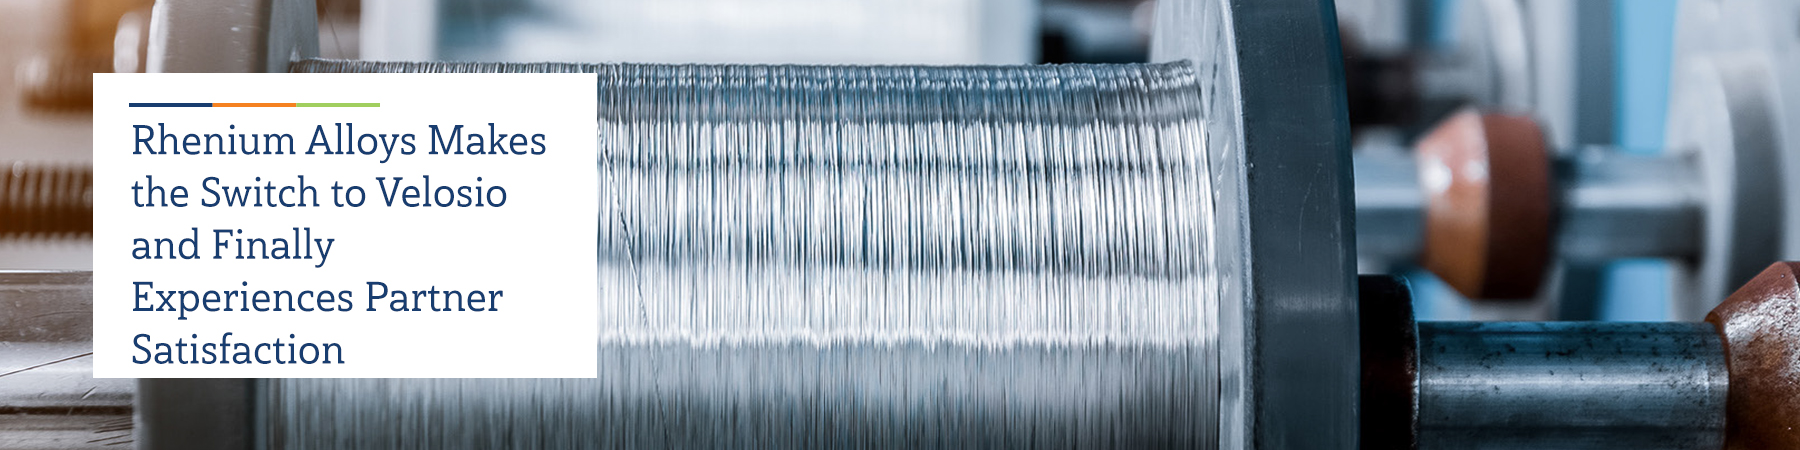 Fisk Alloy Wire and Percon [10 Steps] Case Study Analysis ...